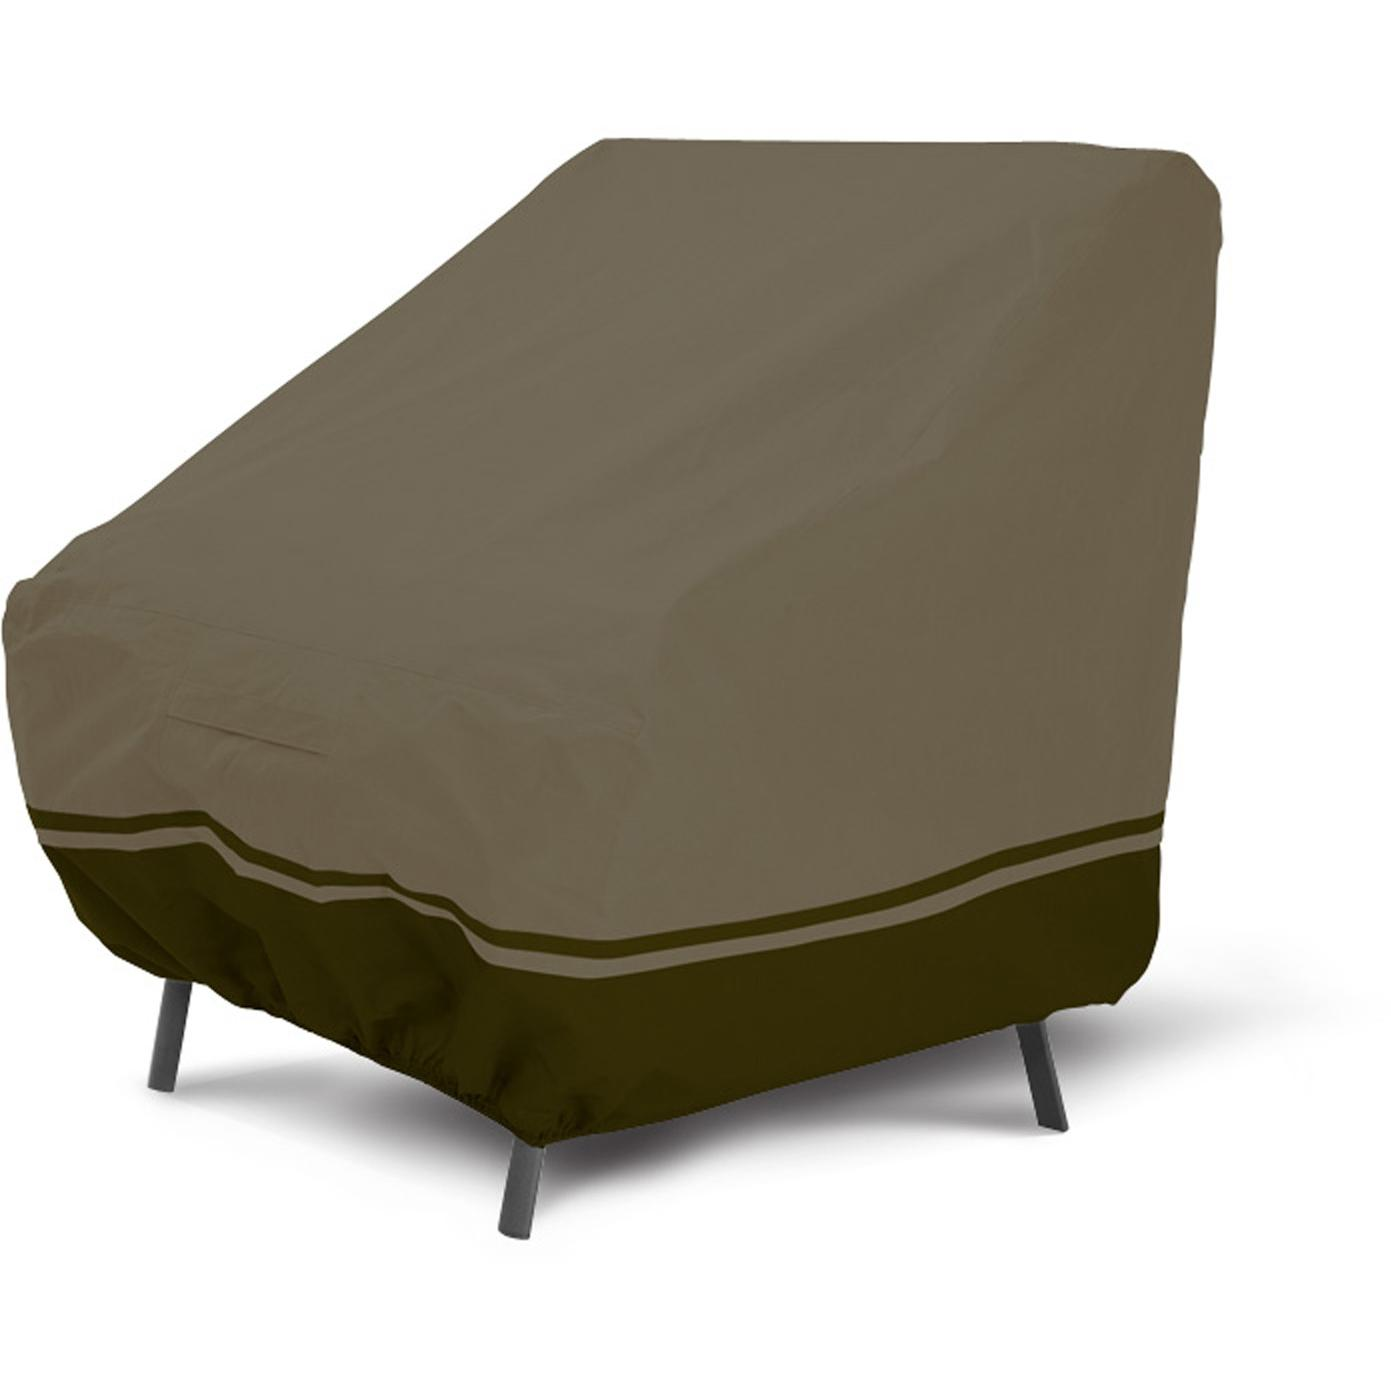 Practical patio furniture covers u s a canada for Patio furniture covers